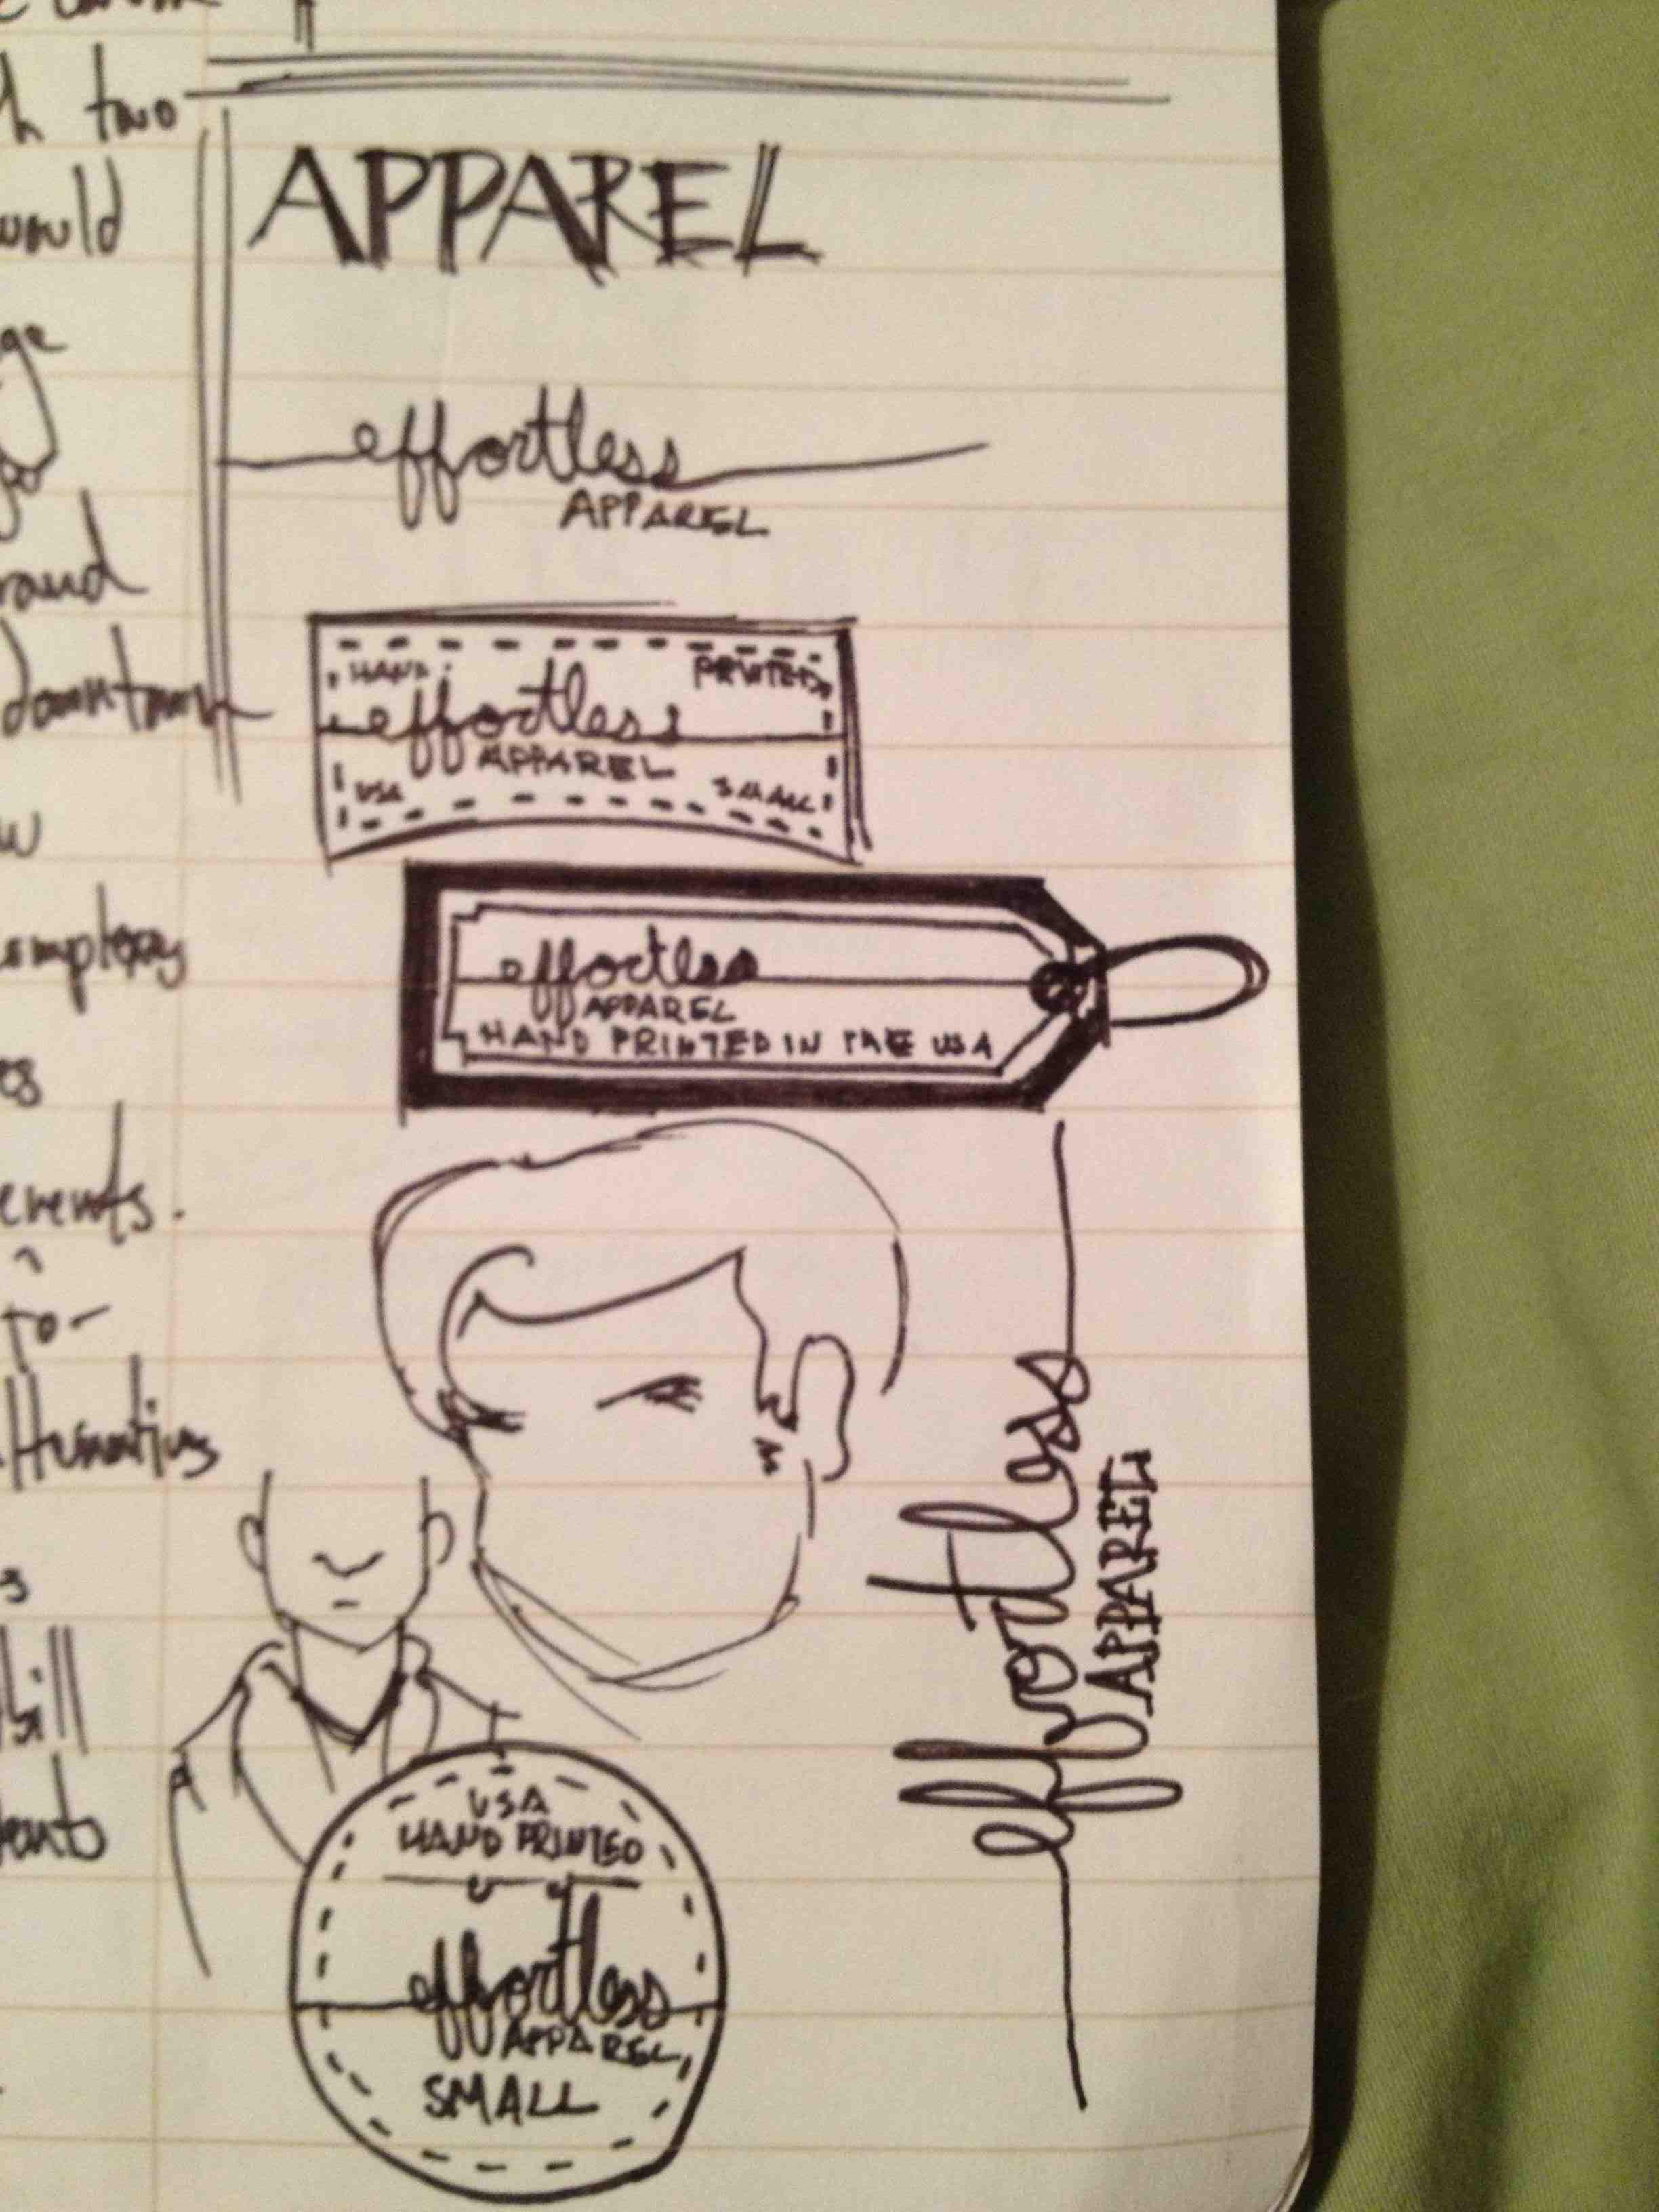 effortless apparel Clothing Tag - image 3 - student project